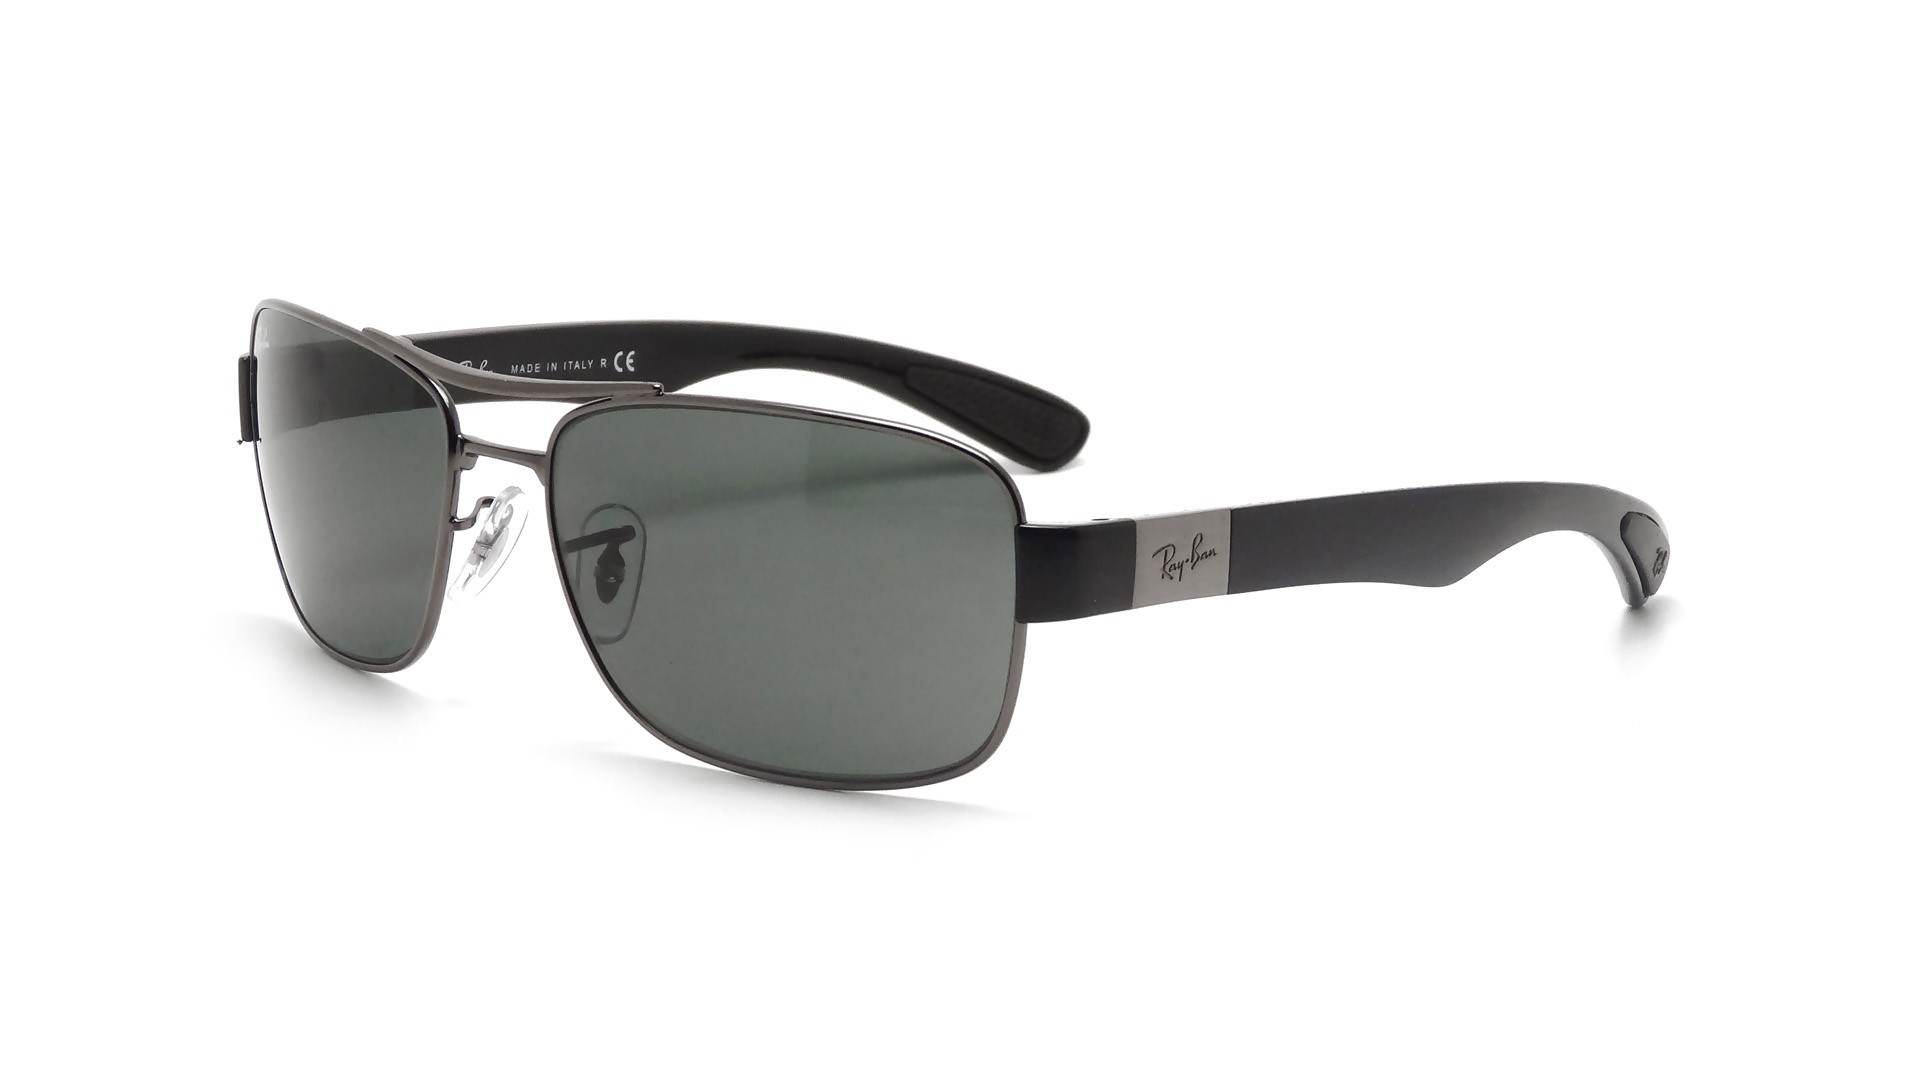 licensed carbon temple fiber product in mm with integrated pin shield s sunglasses matte bmw lamination inserted